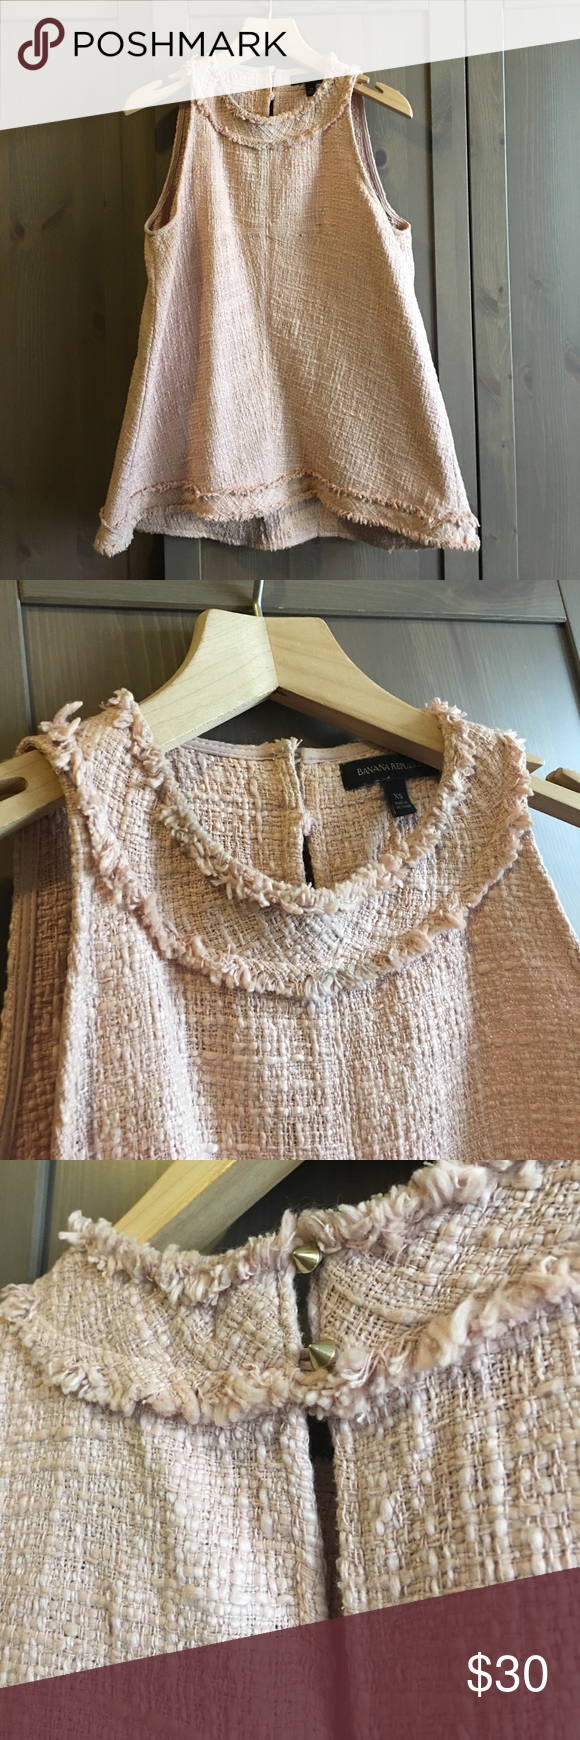 Blush Pink Tweed Banana Republic Top Swingy A-line shaped tweed top. Great neckline with gold studs that fasten it in back as shown in close up. Adds a little edge to a more traditional top. This is an XS but I am normally a medium and have a large chest and it fit perfectly. Banana Republic Tops Tank Tops